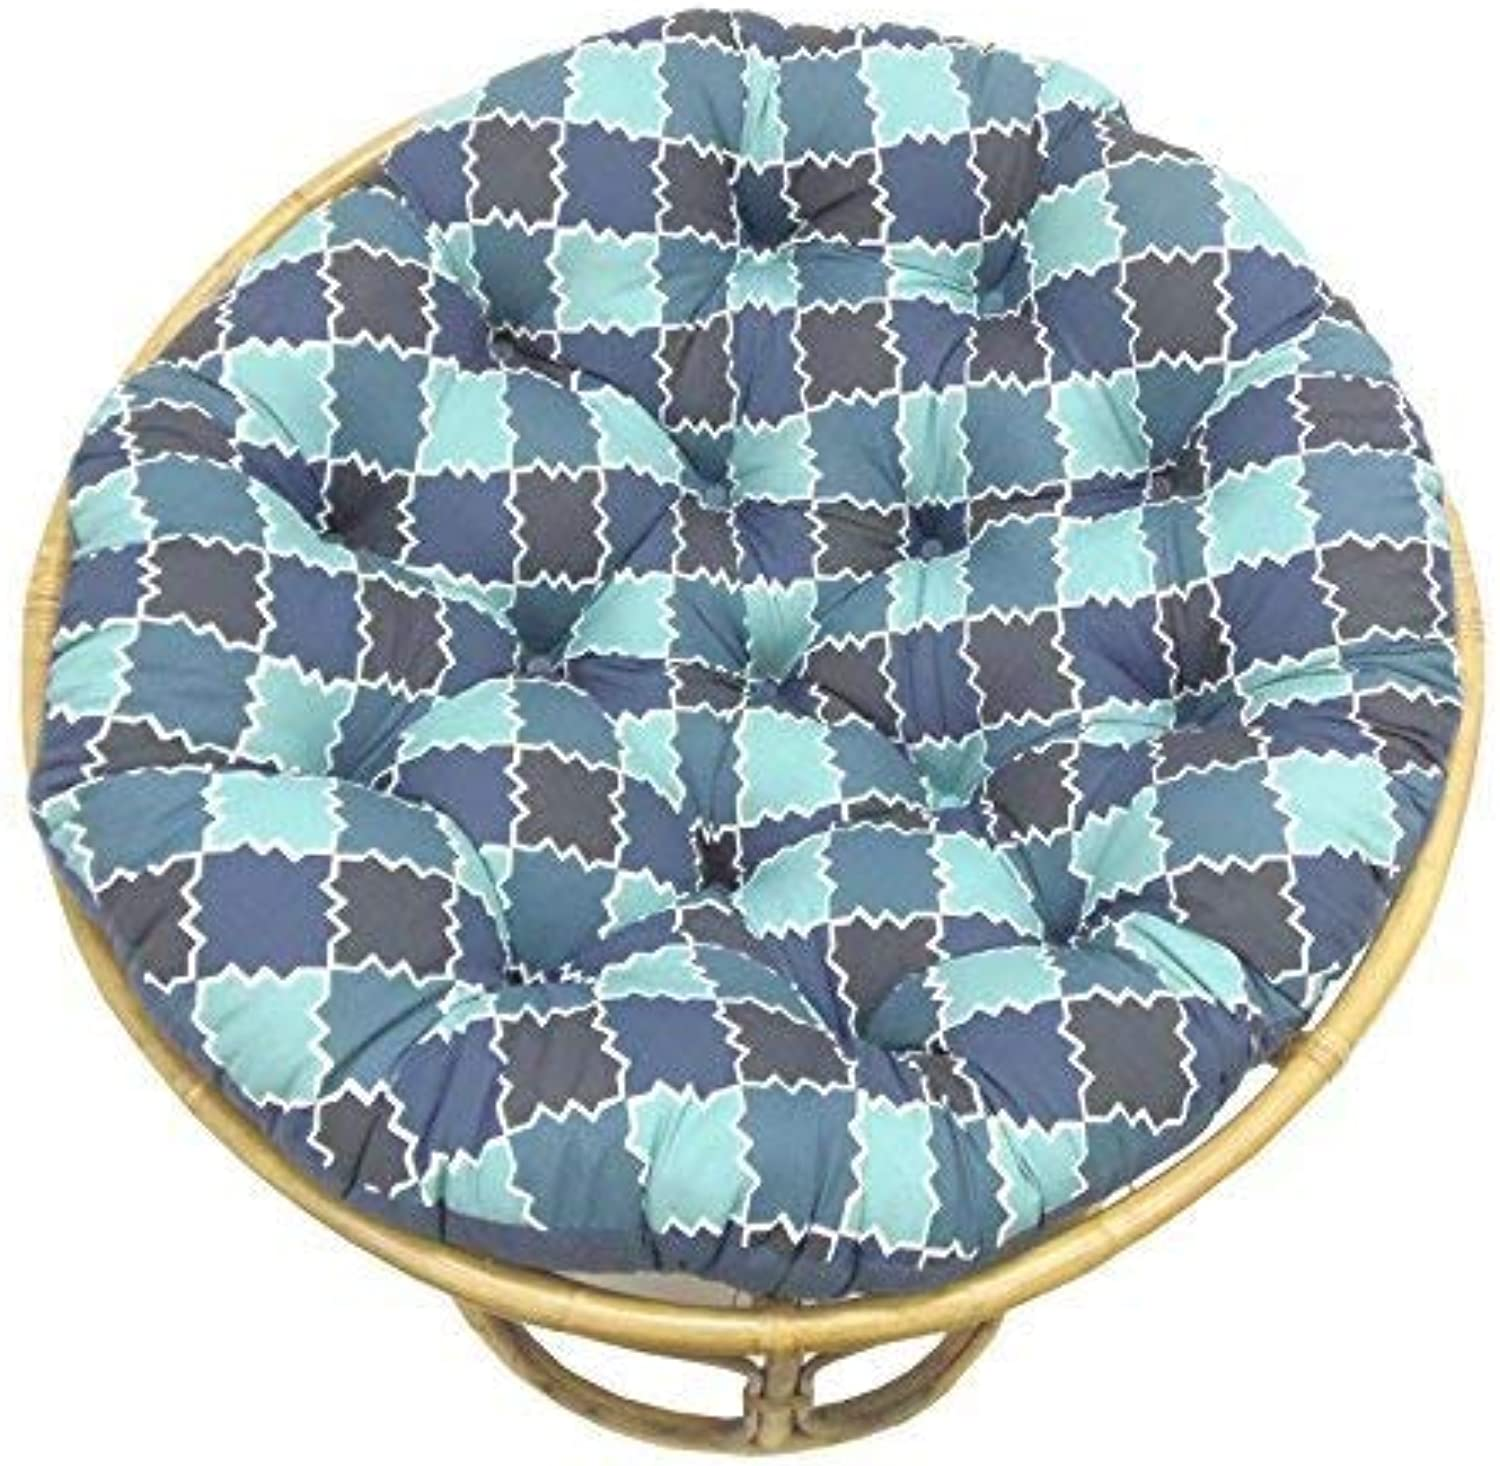 Cotton Craft Papasan Mgoldccan Mosaic Tile Shades of bluee Overstuffed Chair Cushion, Sink into Our Comfortable and Oversized Papasan, Pure 100% Cotton Duck Fabric, Fits Standard 45 inch Round Chair